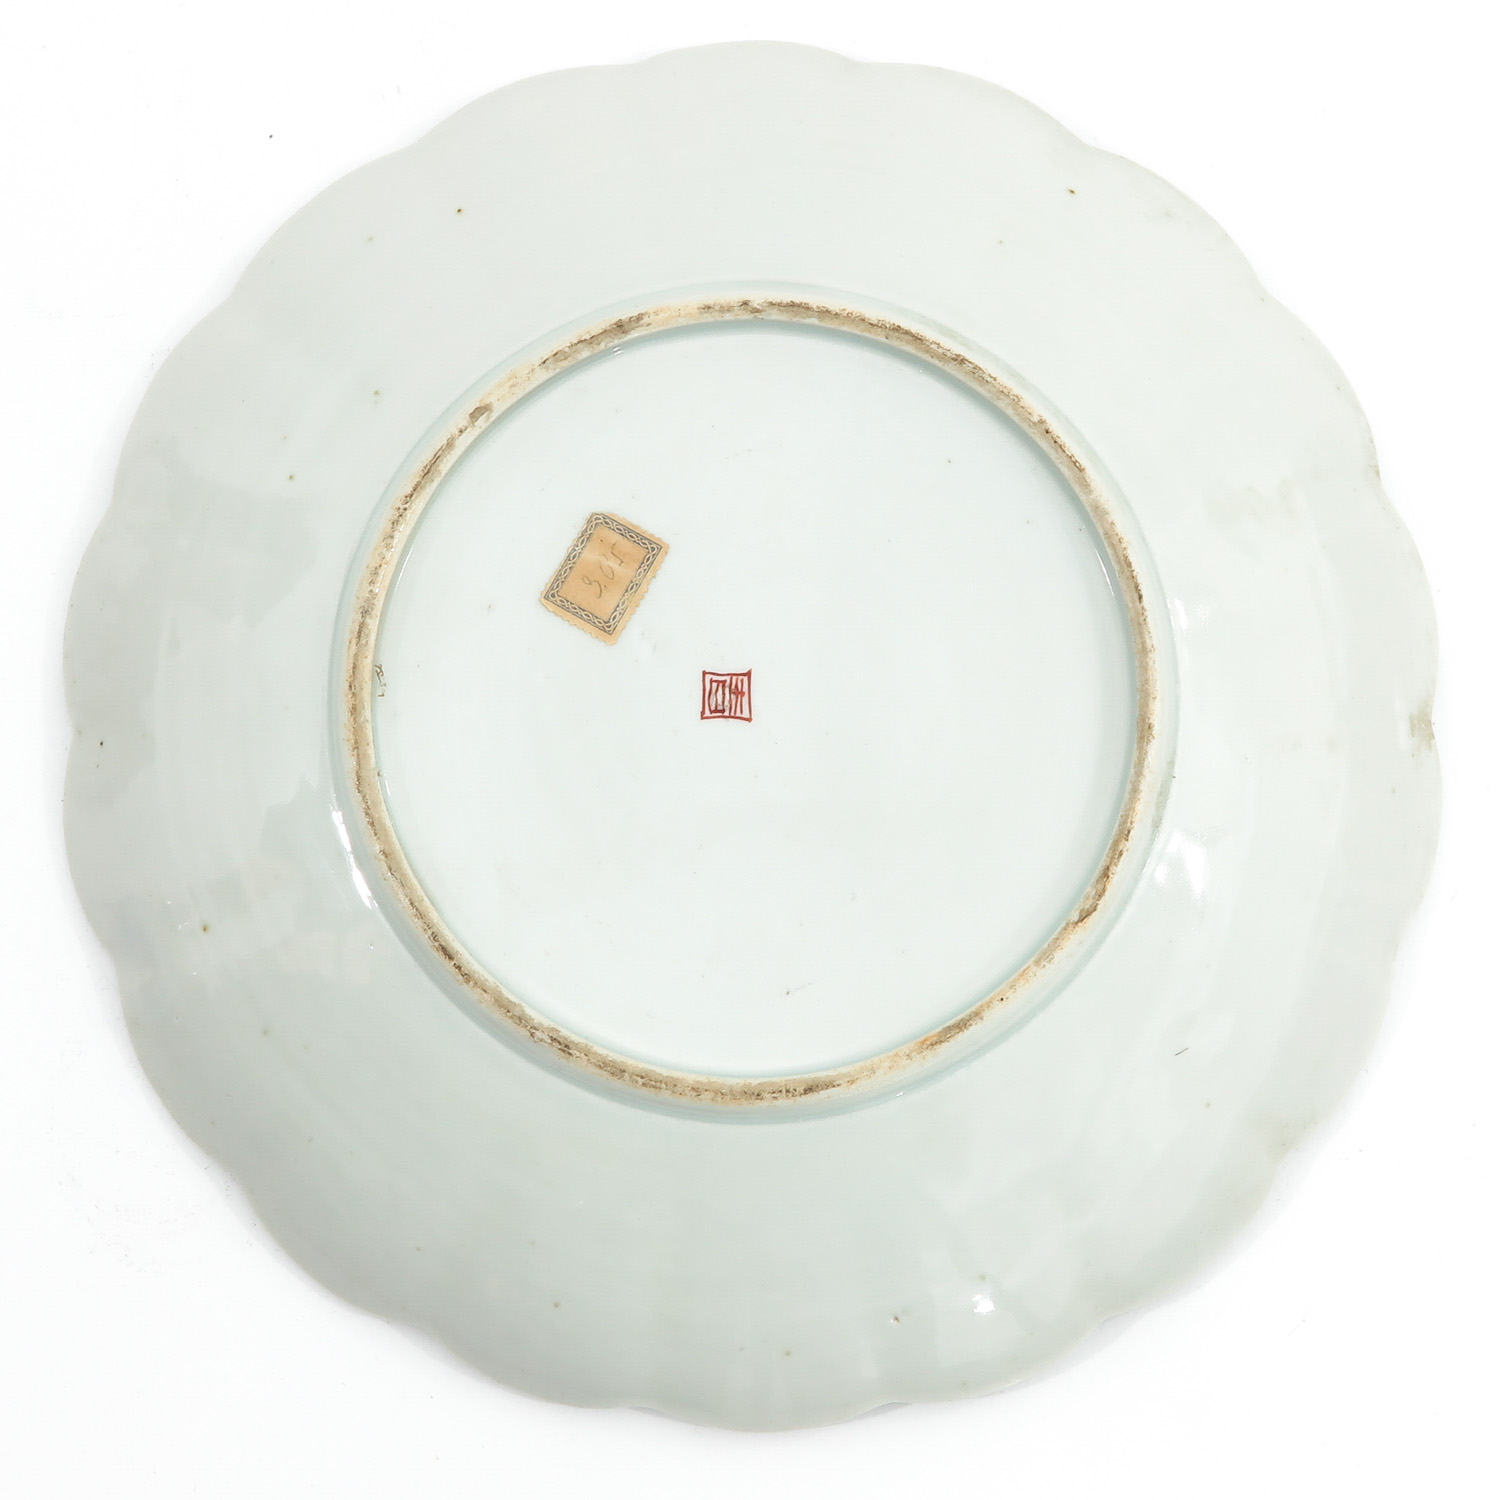 A Polychrome Decor Charger - Image 2 of 6